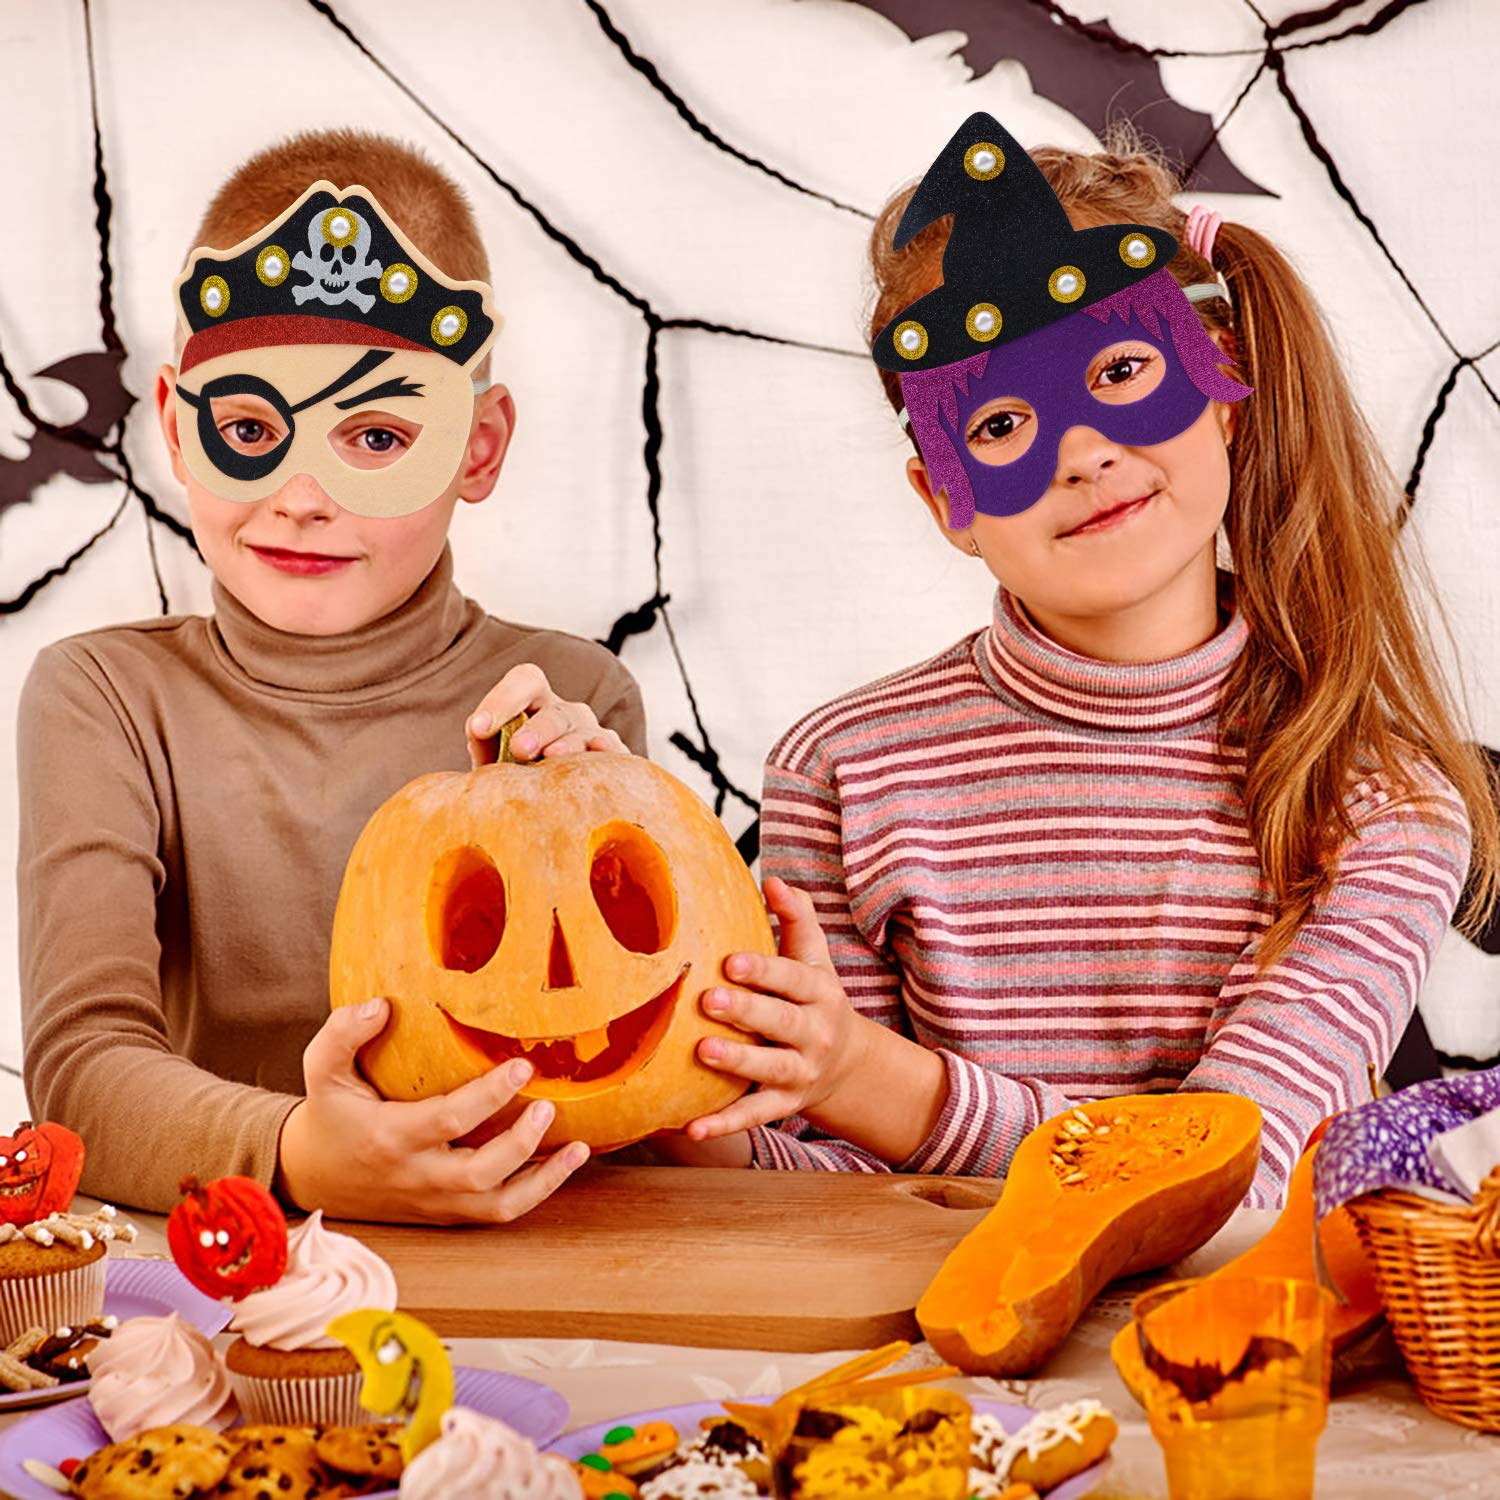 ZOYLINK Halloween Mask Kids Mask Felt Mask, LED Mask cosplay Mask Party Mask for Carnival Birthday Party Costume Ball to Play Pumpkin Pirate Witch Mask (6 Pack)